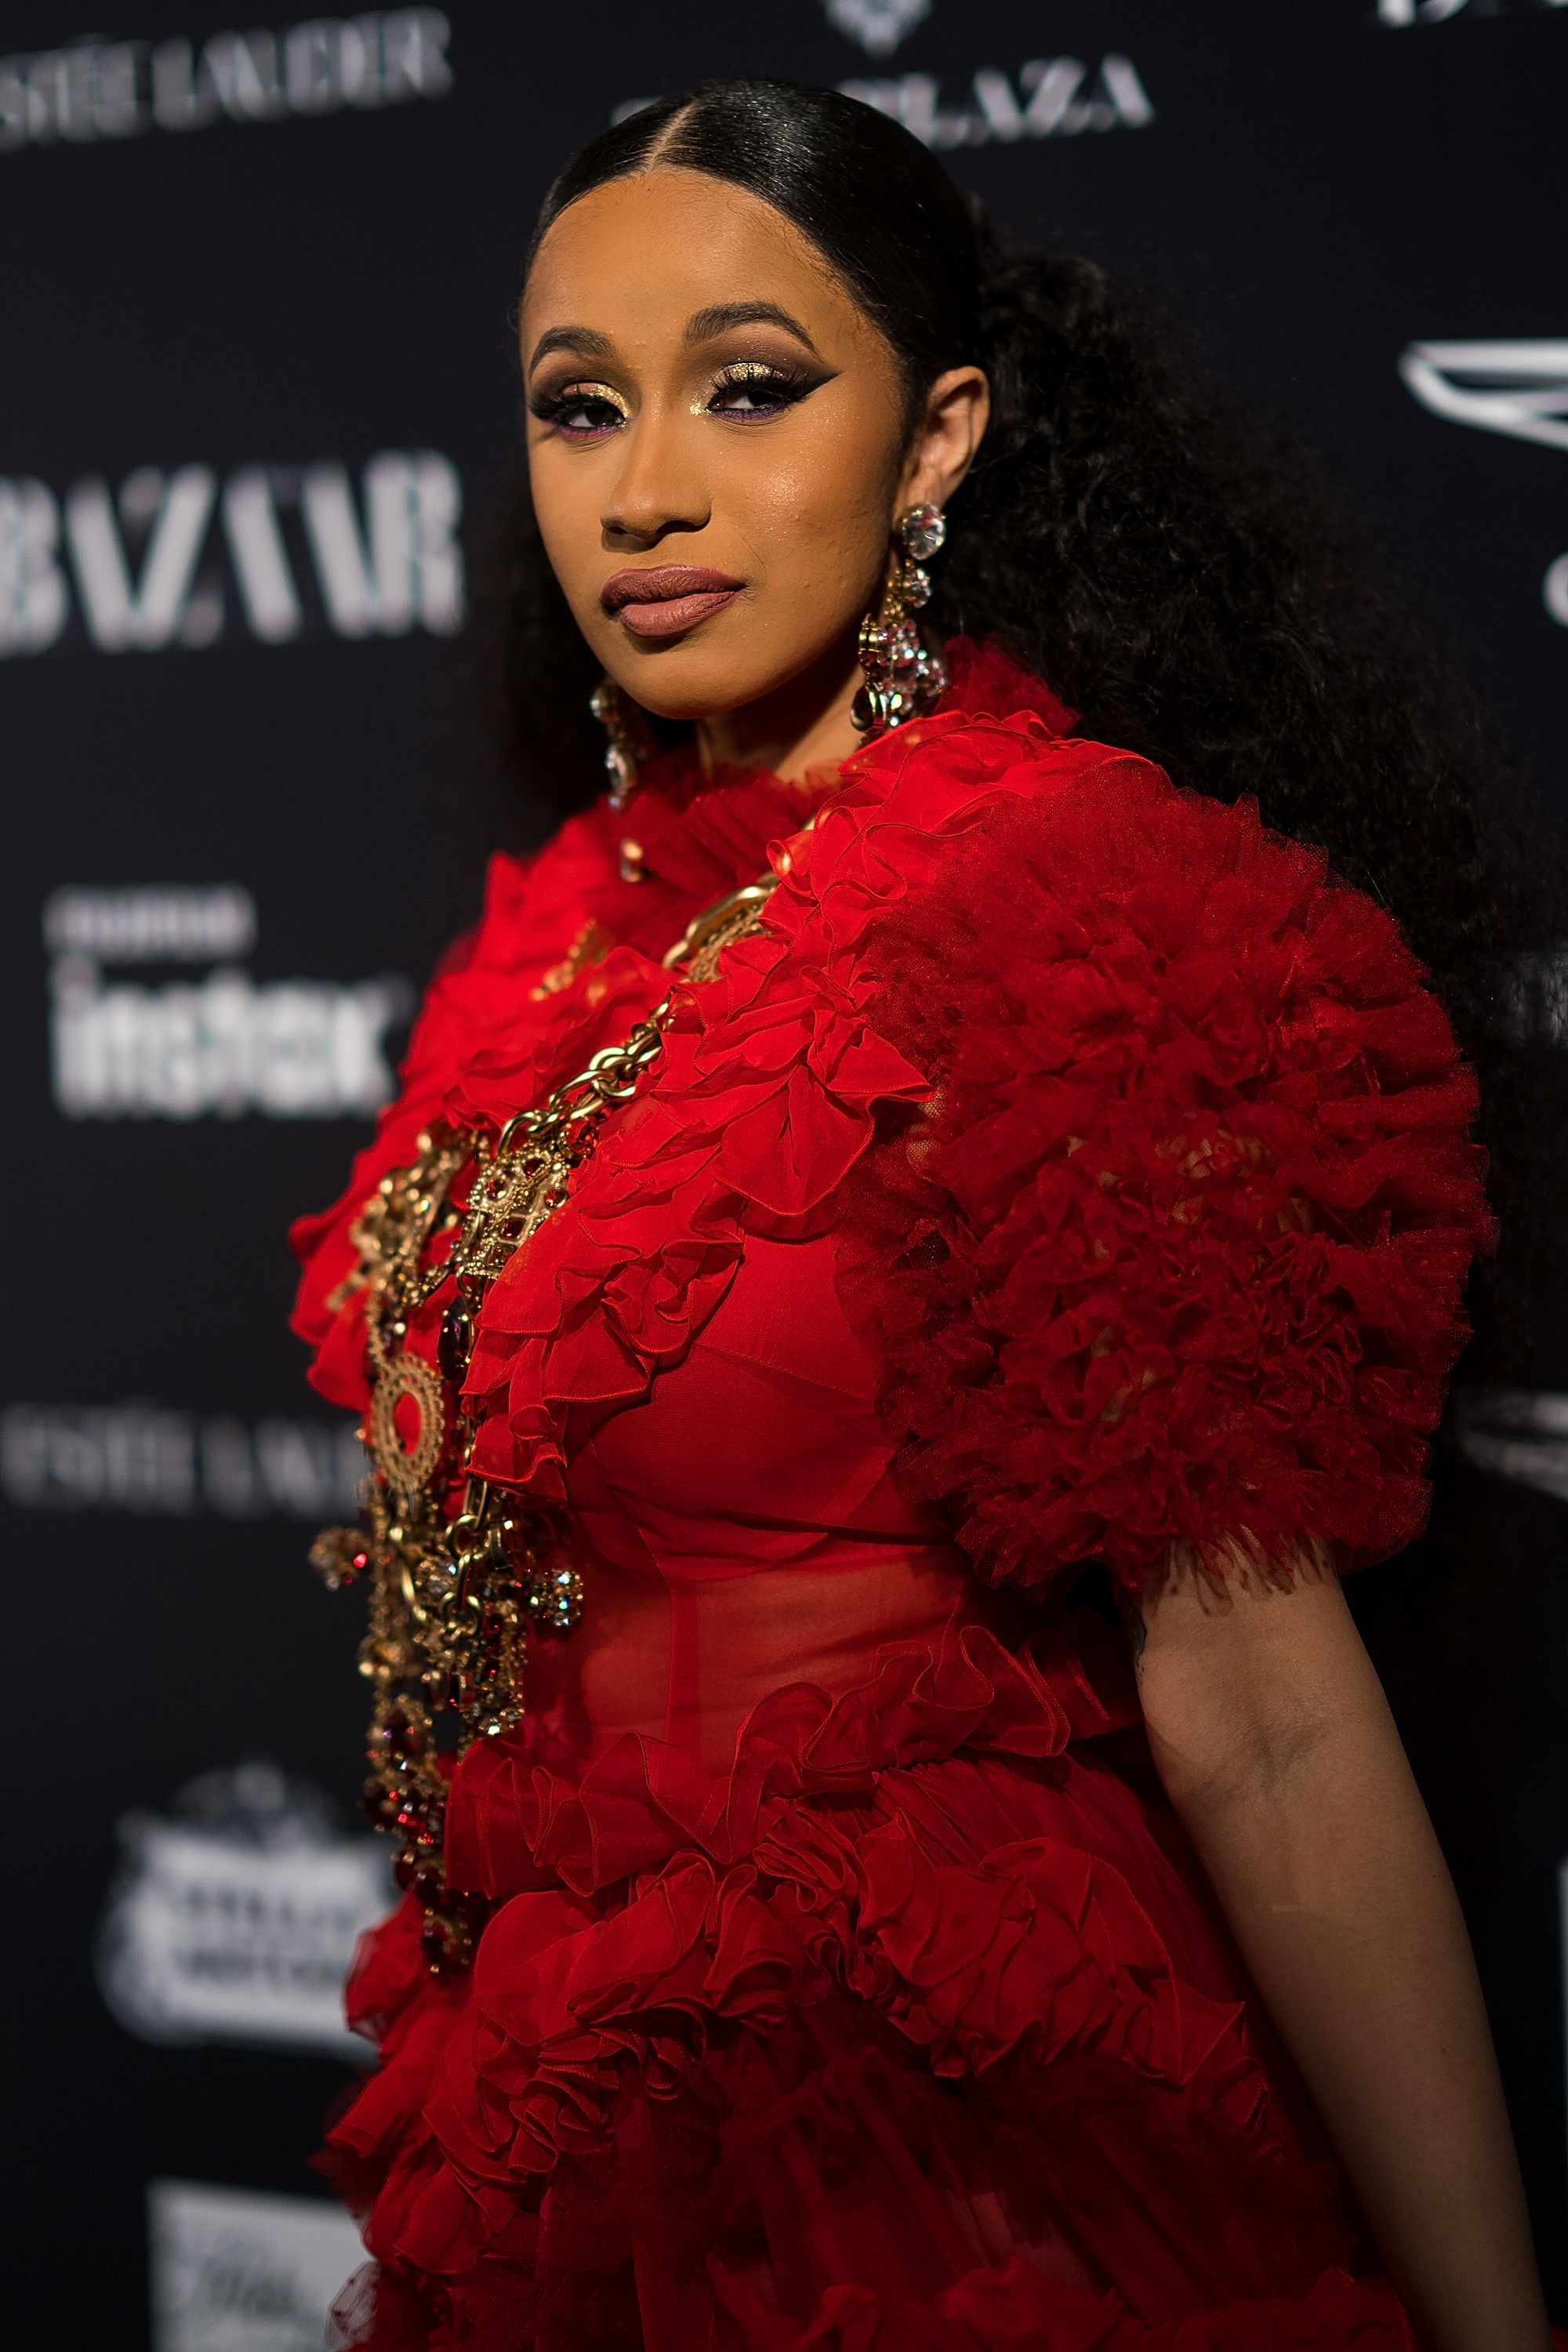 d12712efc7f24 cardi-b-attends-harpers-bazaar-icons-at-the-plaza-hotel -on-news-photo-1028997534-1537185737.jpg